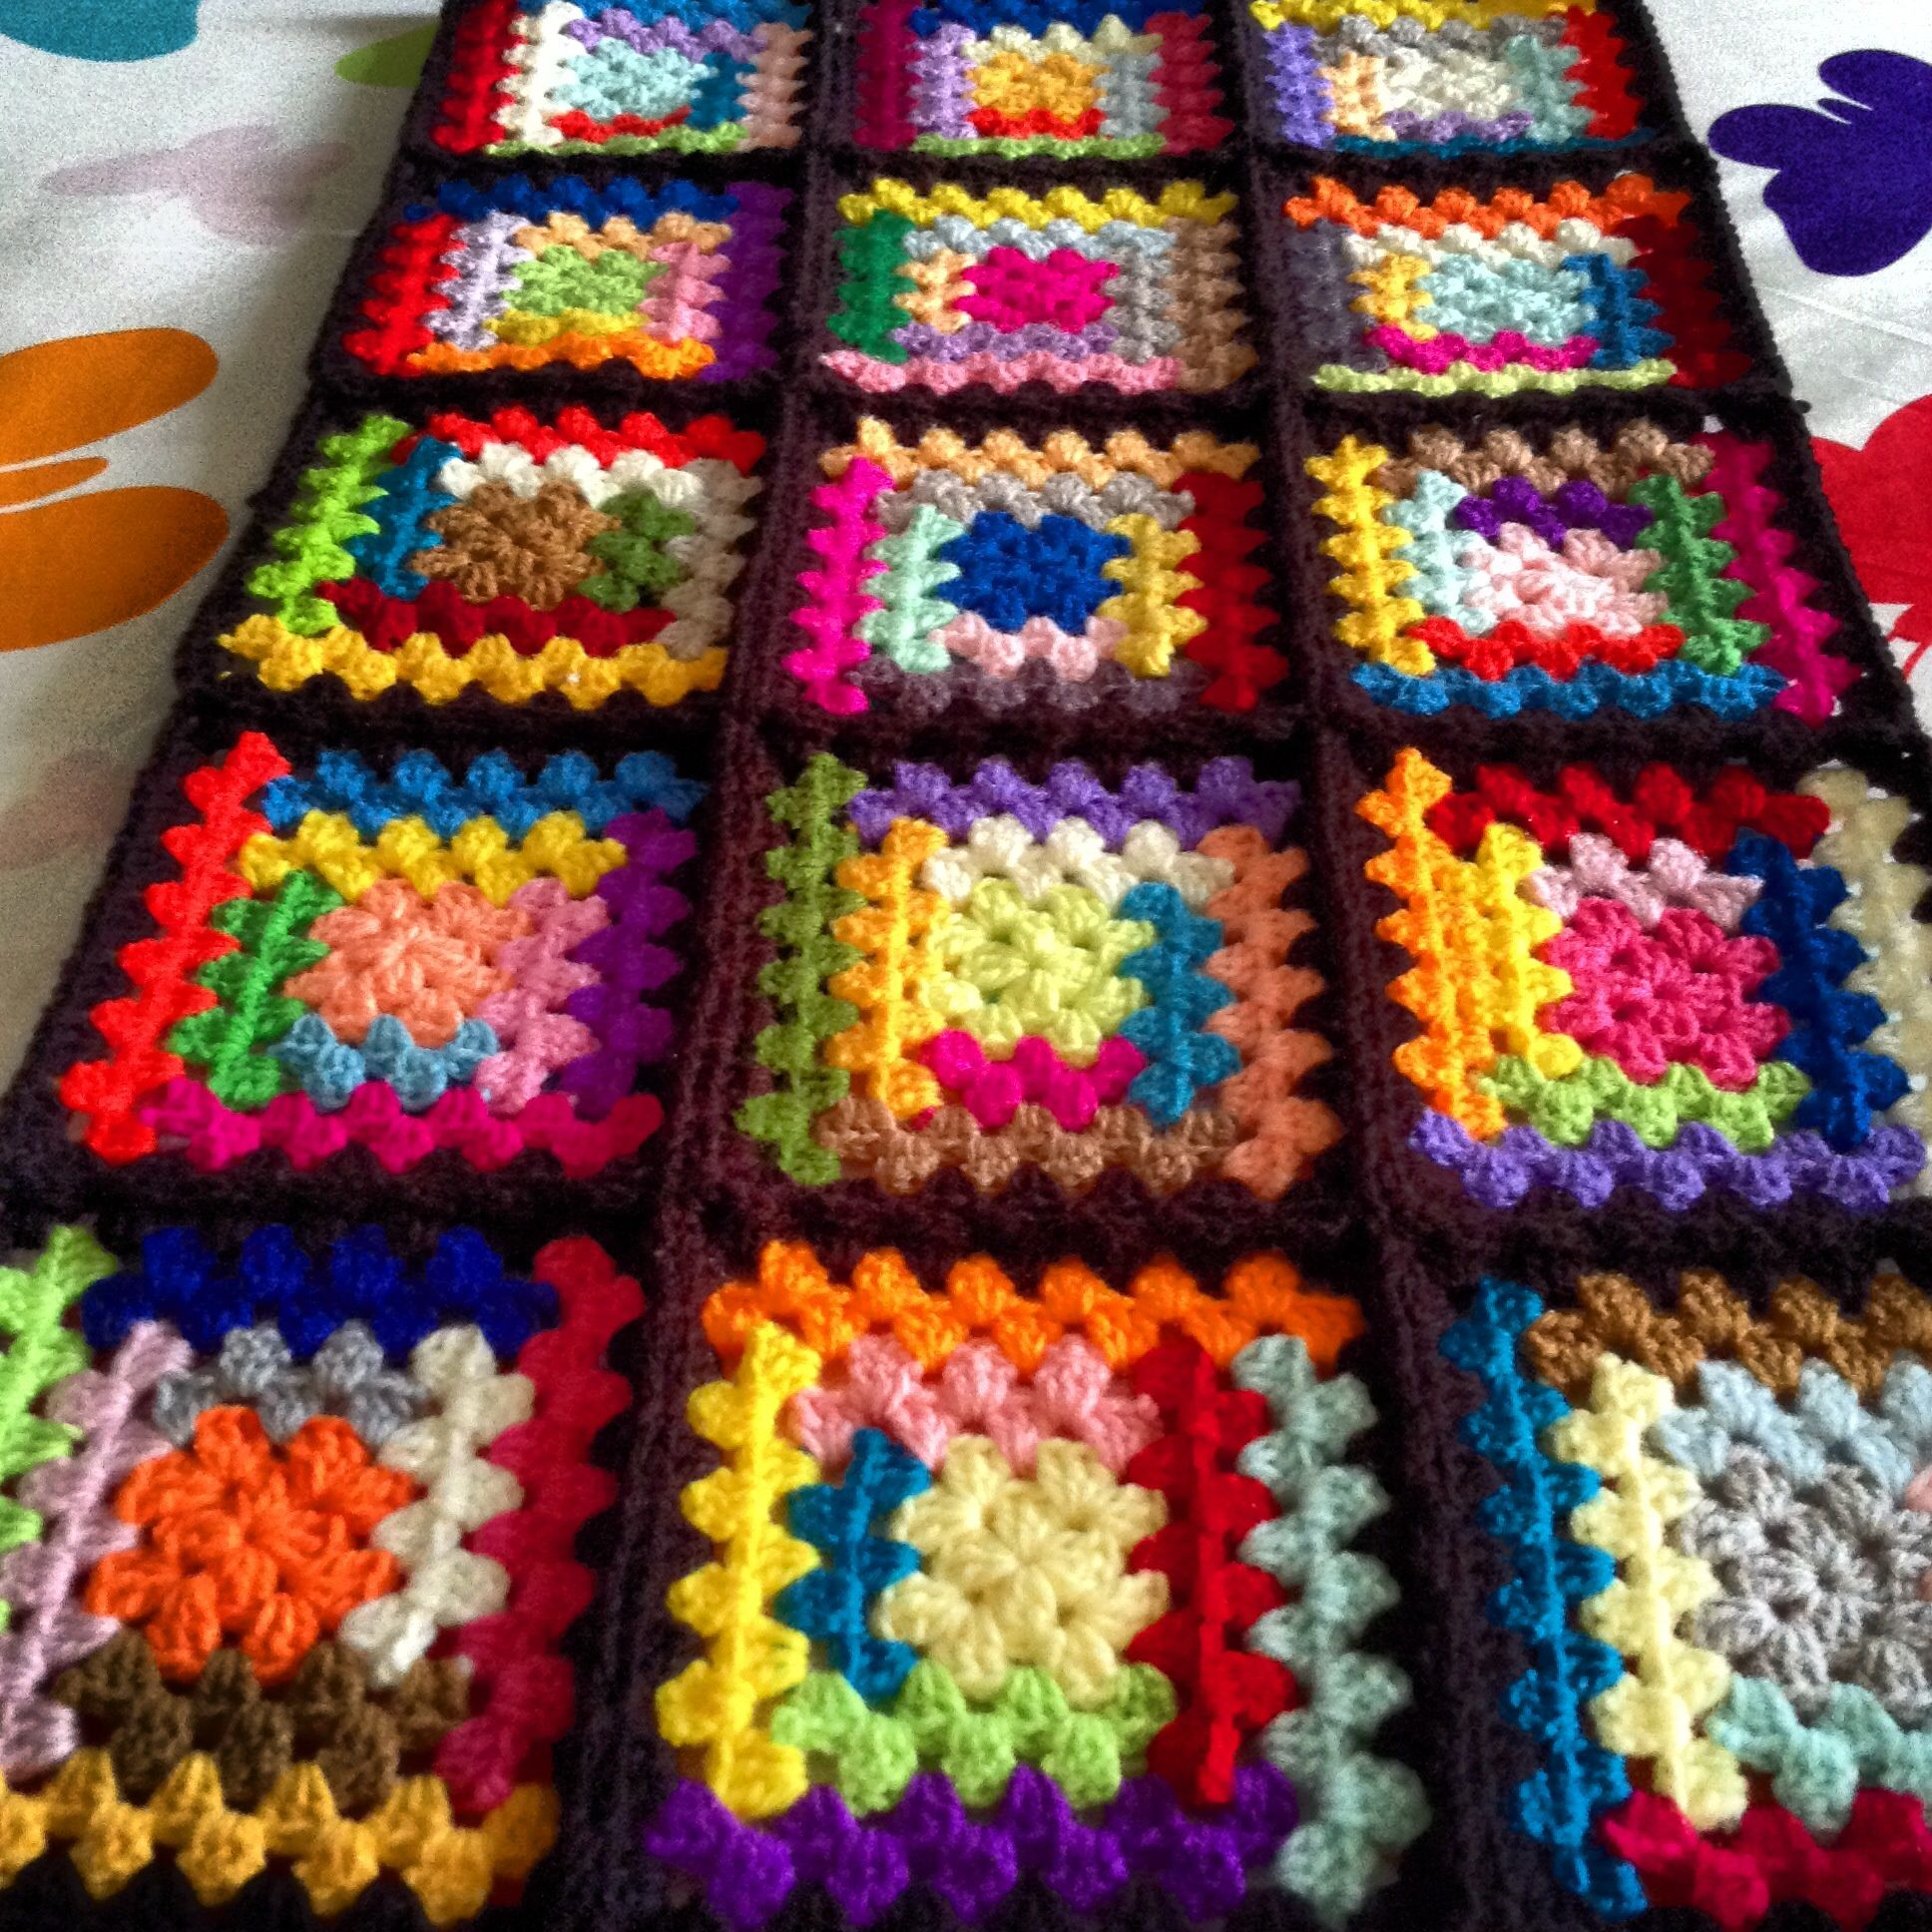 log cabin granny square | Knitting /Crochet - Blankets | Pinterest ...